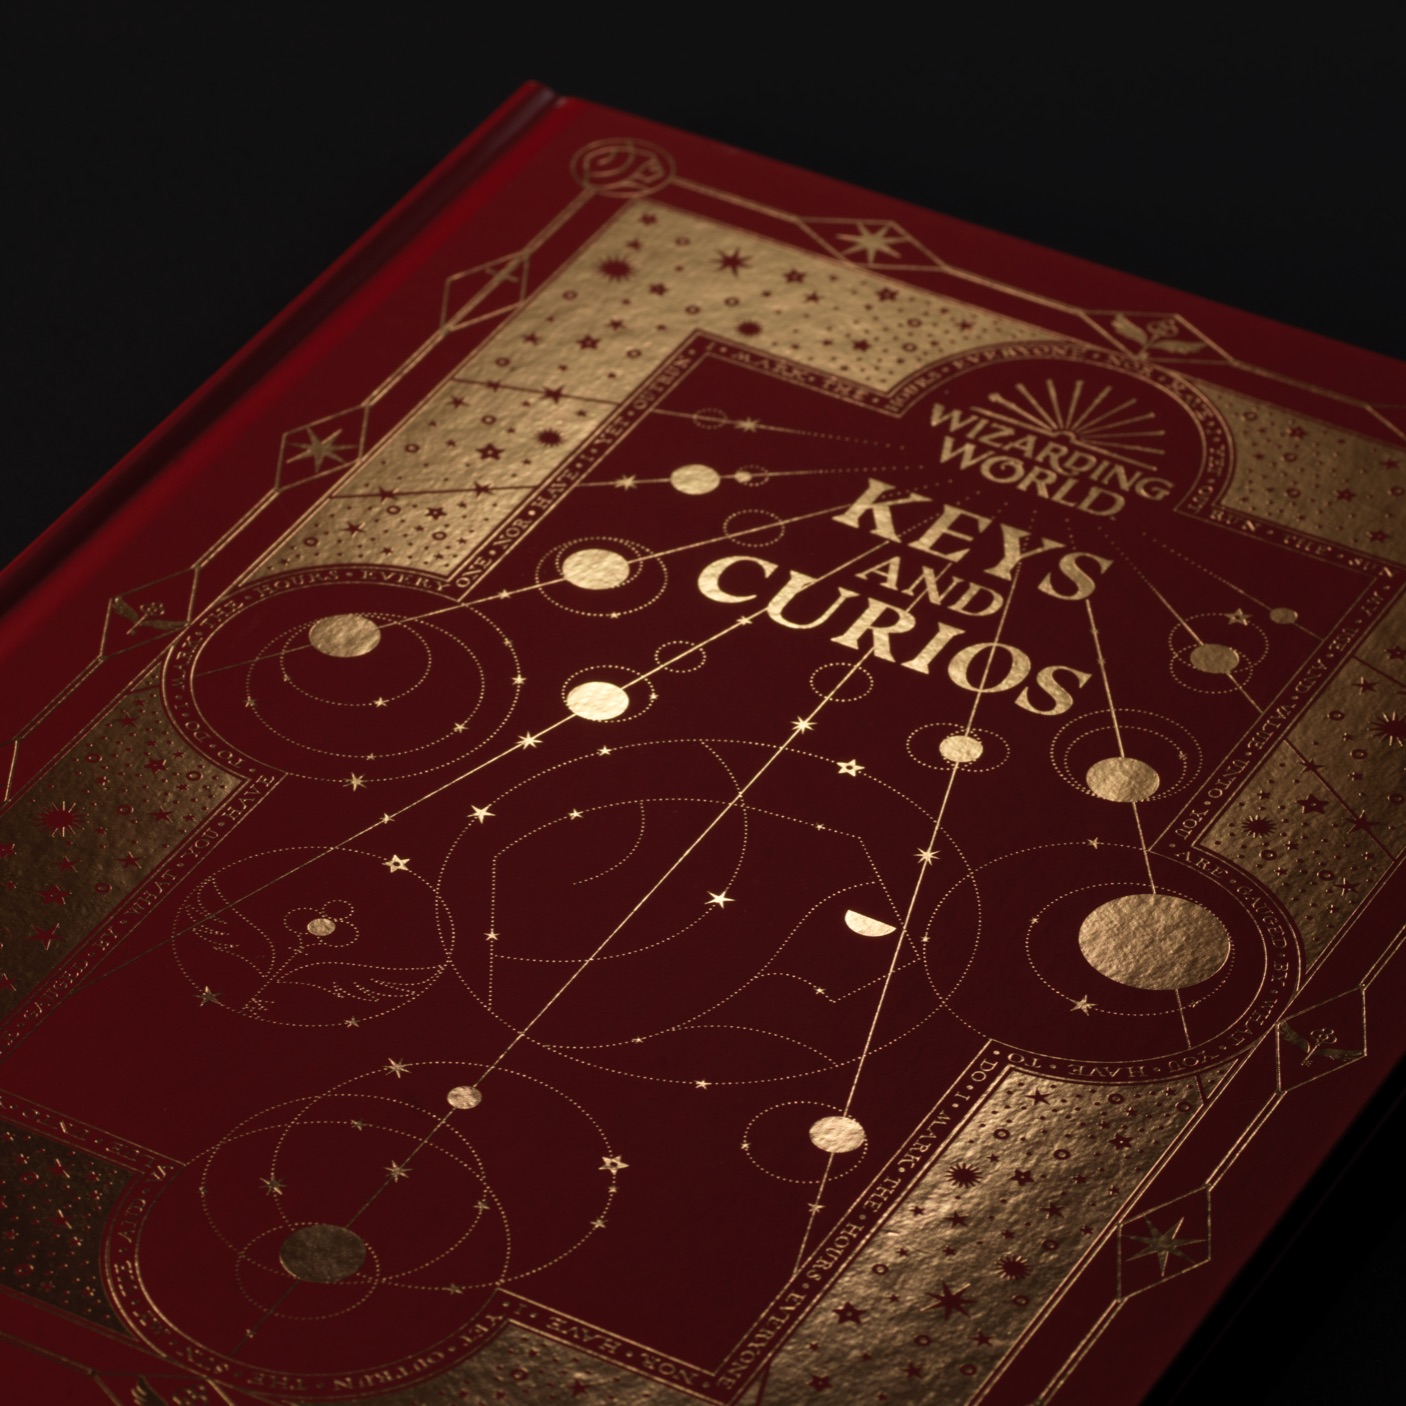 The Keys and Curios cover, designed by MinaLima